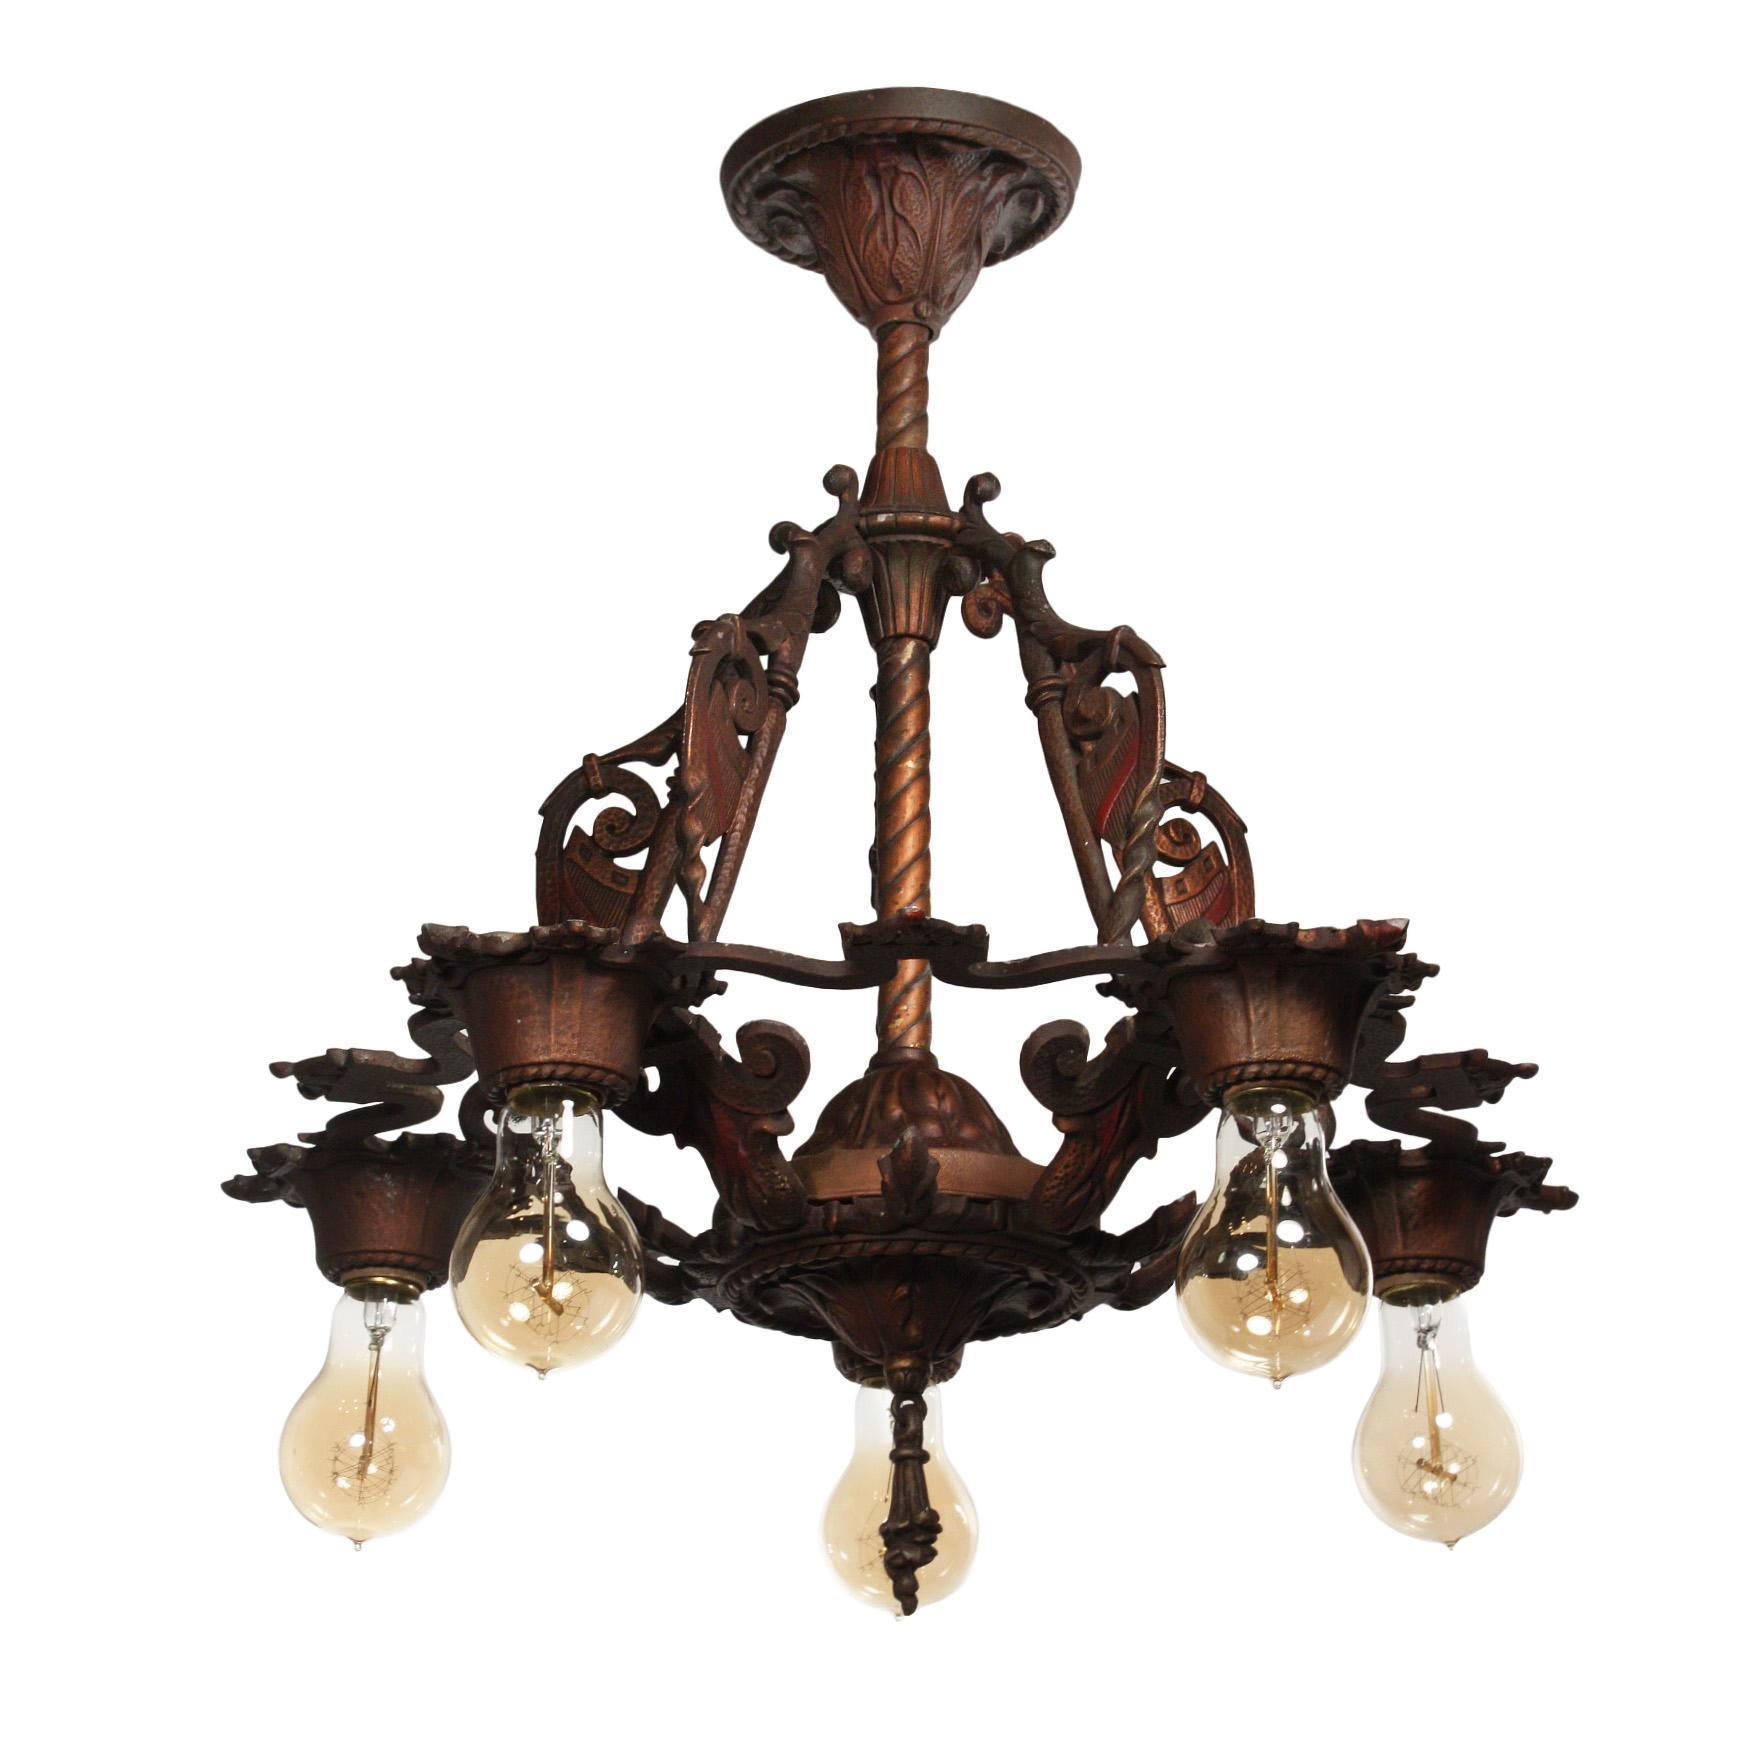 Antique Spanish Revival Chandelier with Shields